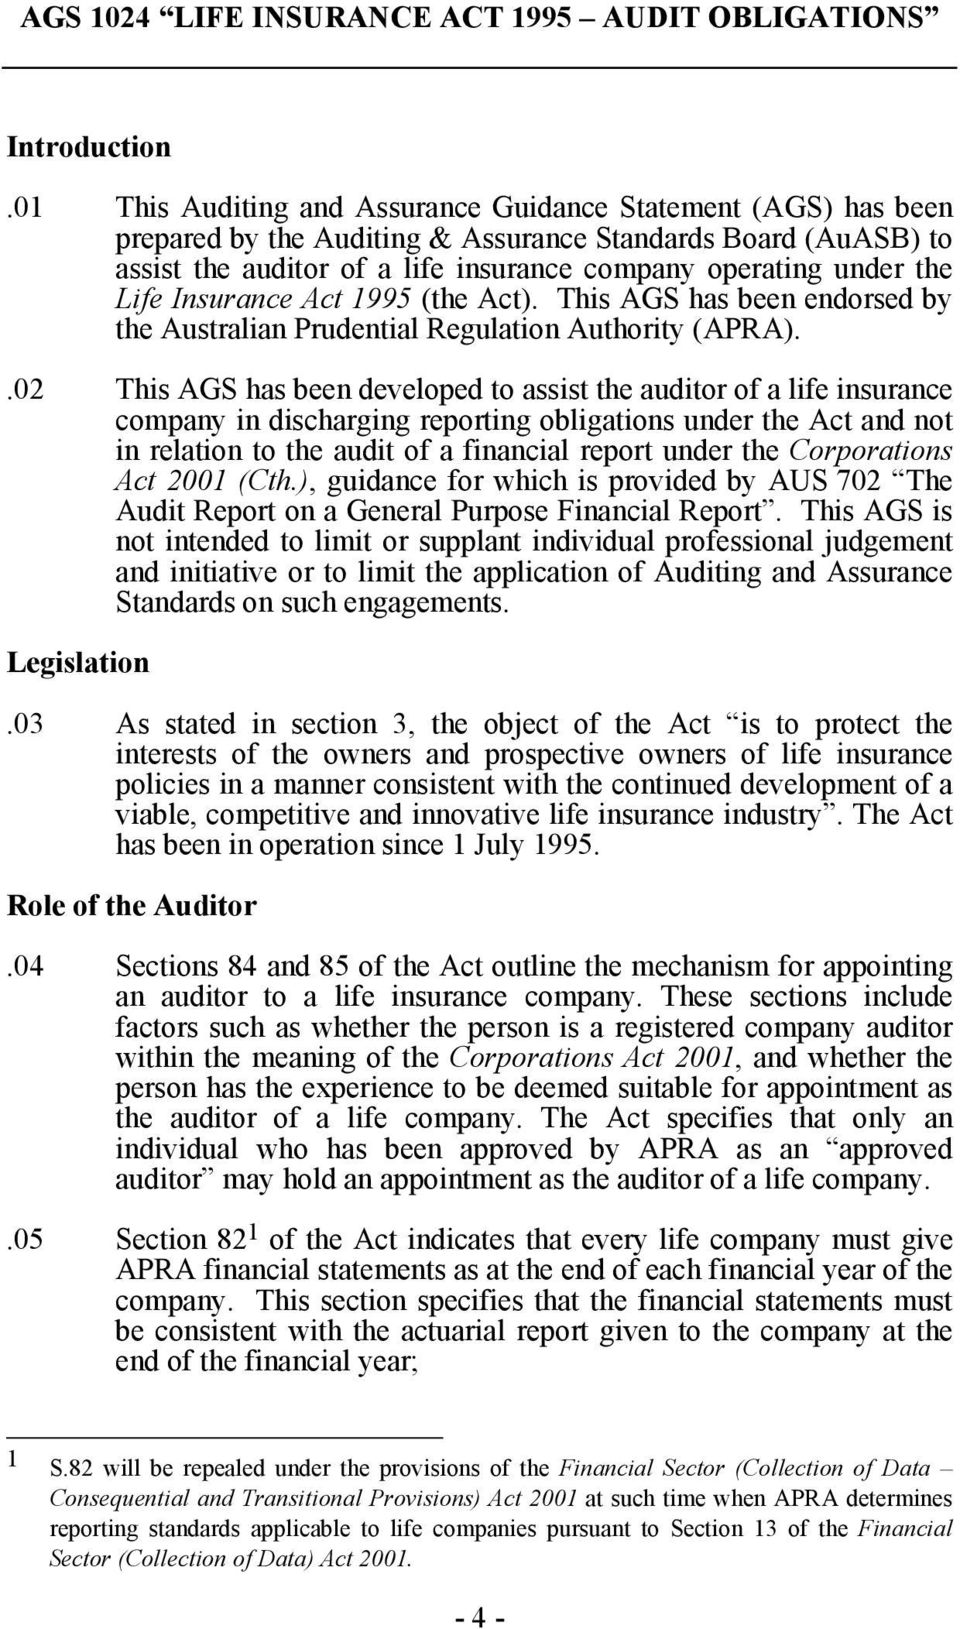 Life Insurance Act 1995 (the Act). This AGS has been endorsed by the Australian Prudential Regulation Authority (APRA).